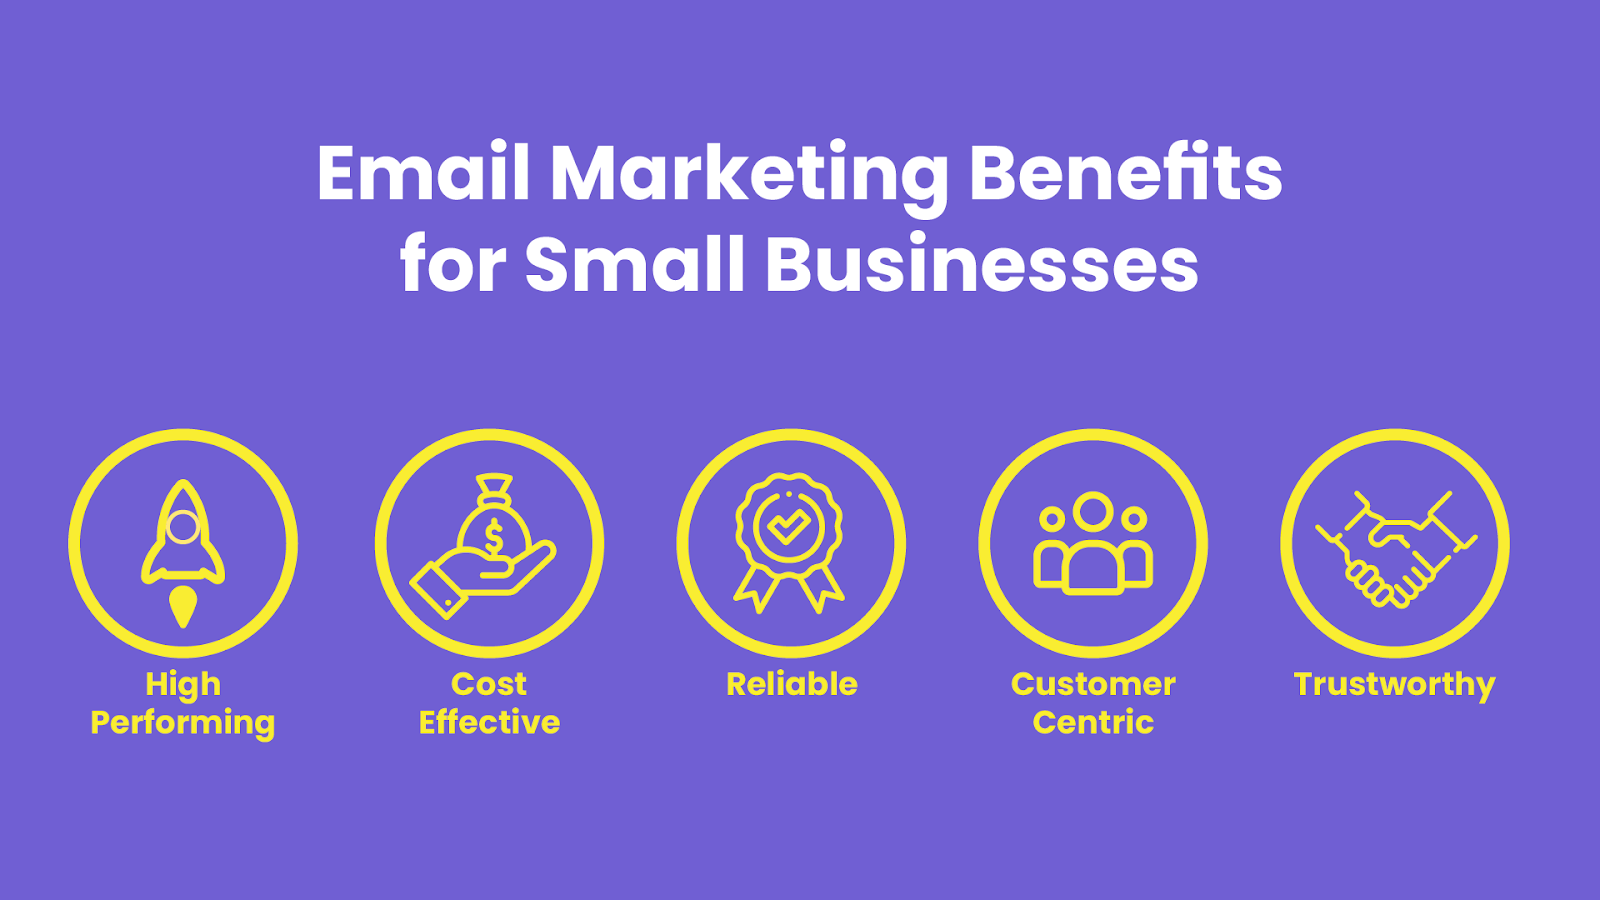 The different benefits of email marketing for small businesses